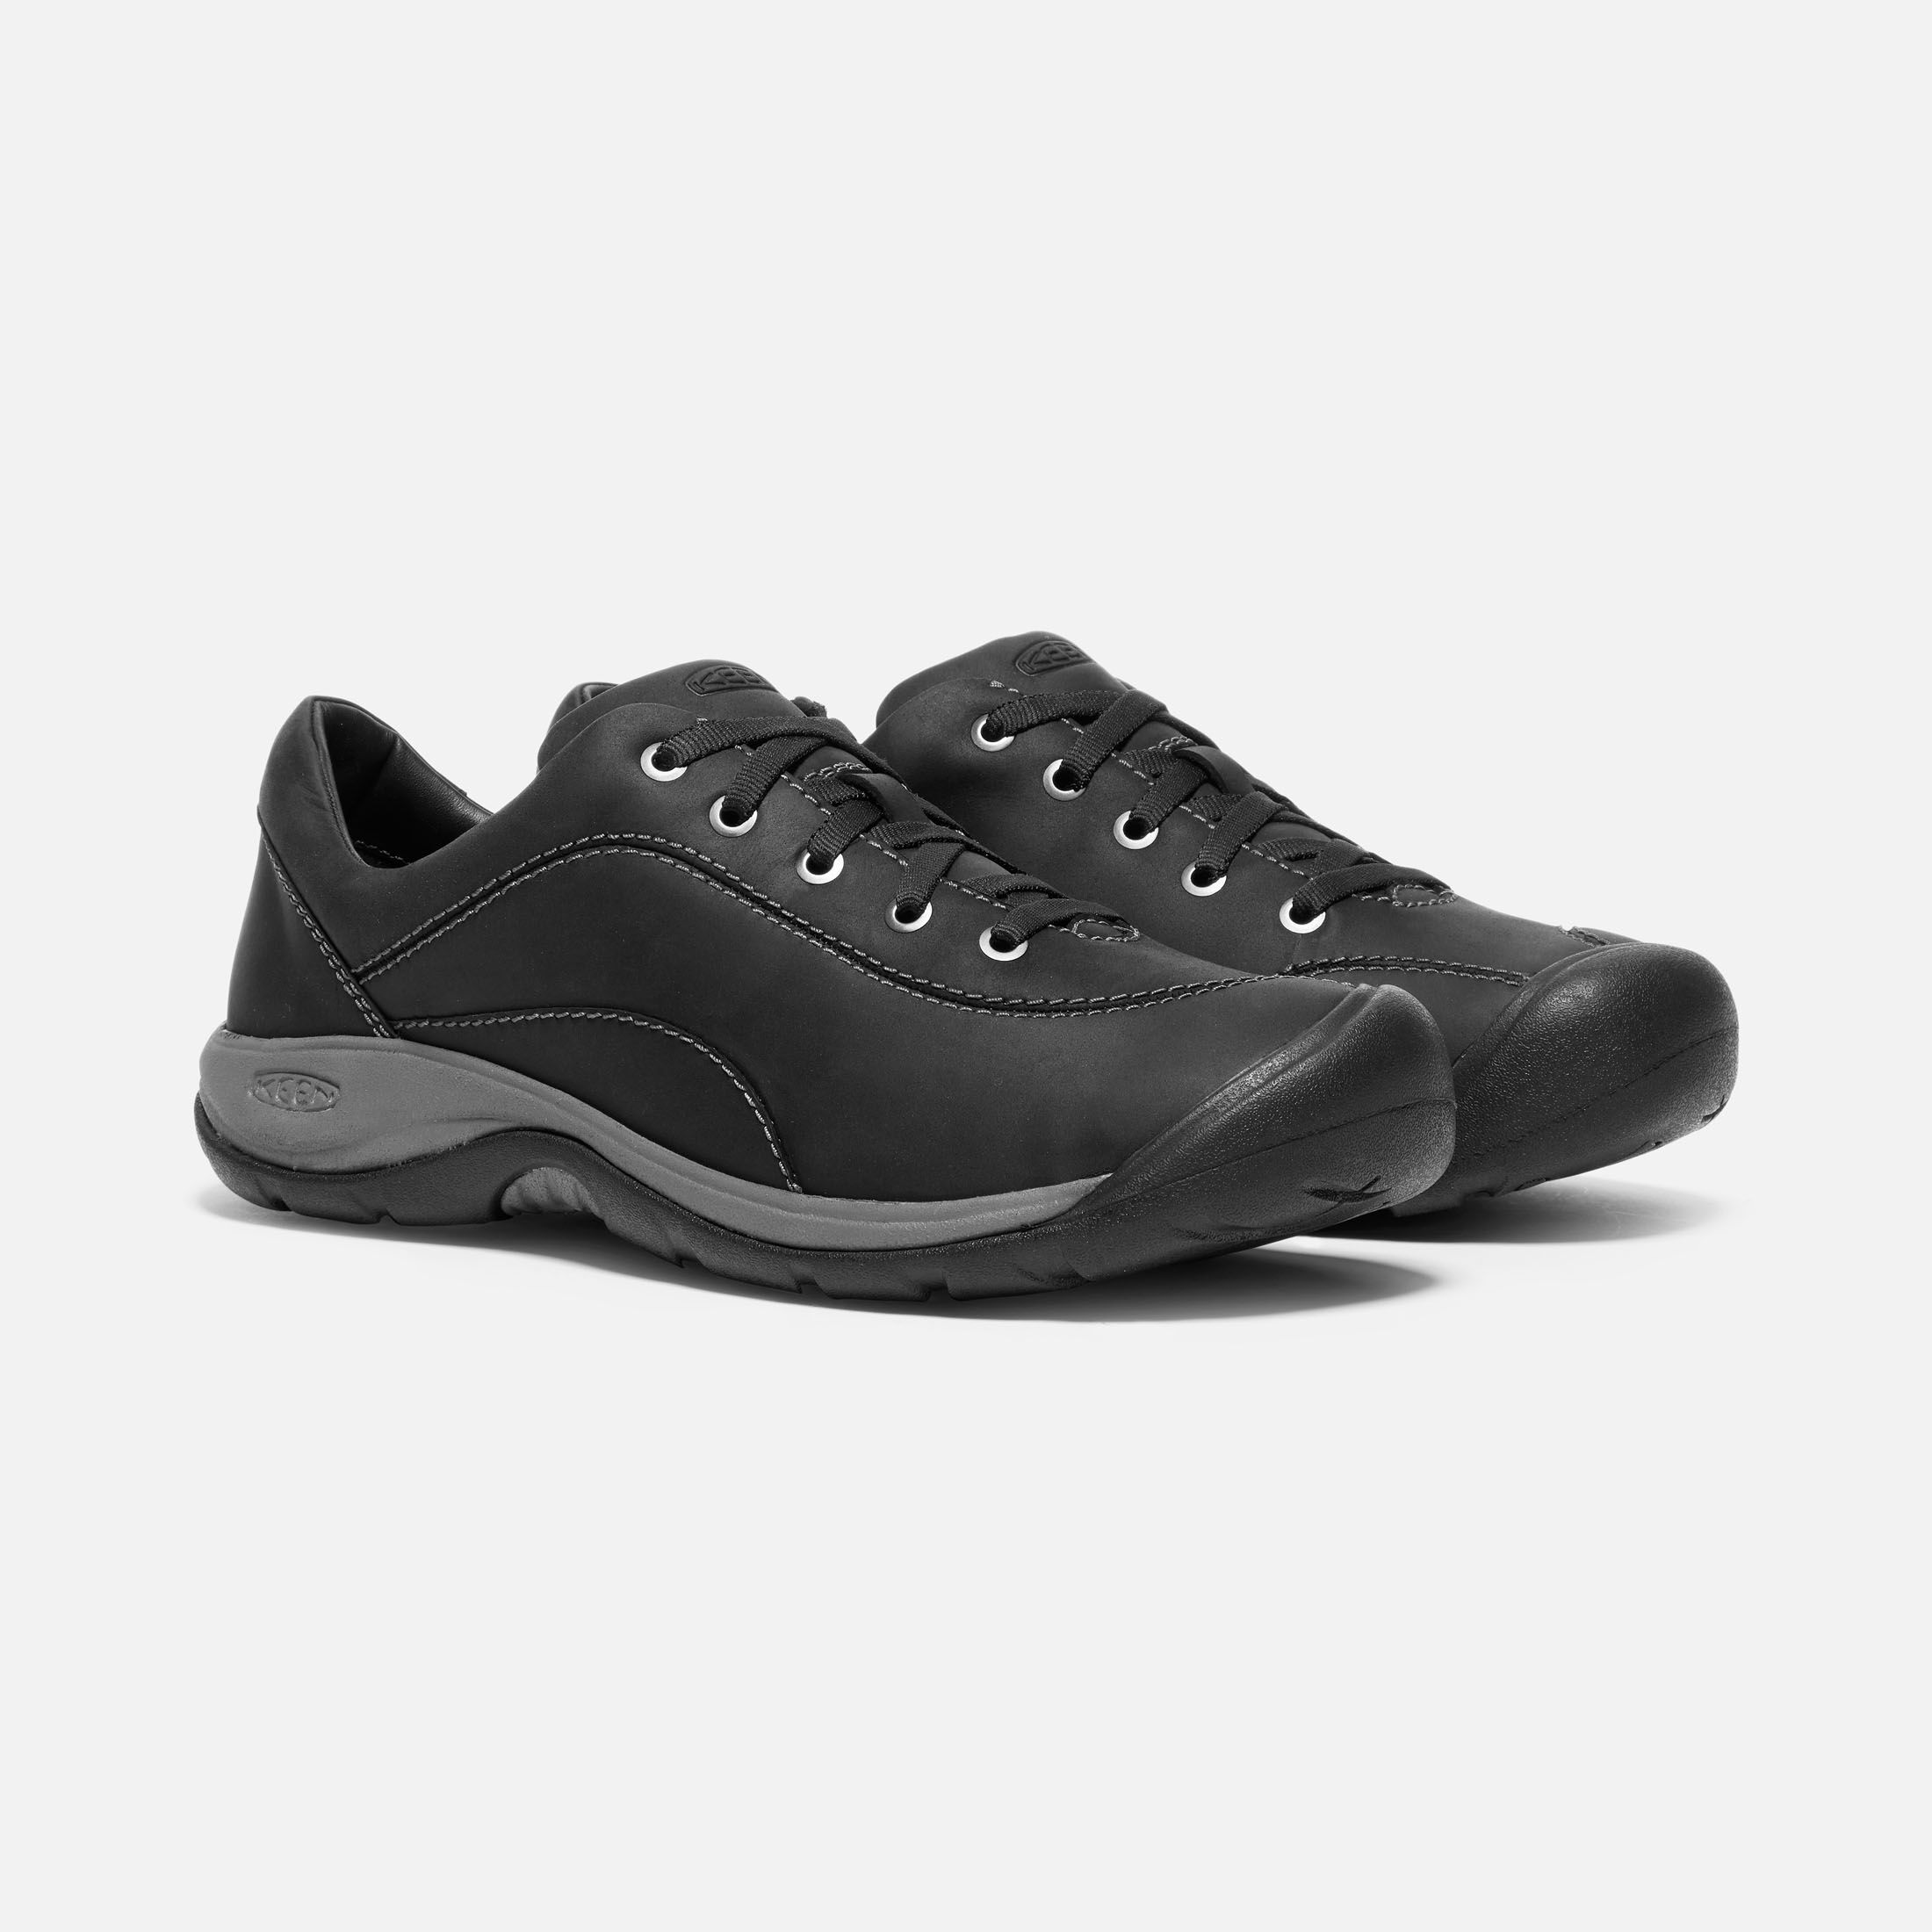 clearance store top quality sale online Keen Presidio II Shoes - Women's clearance clearance store sale in China buy cheap how much eJz1bX